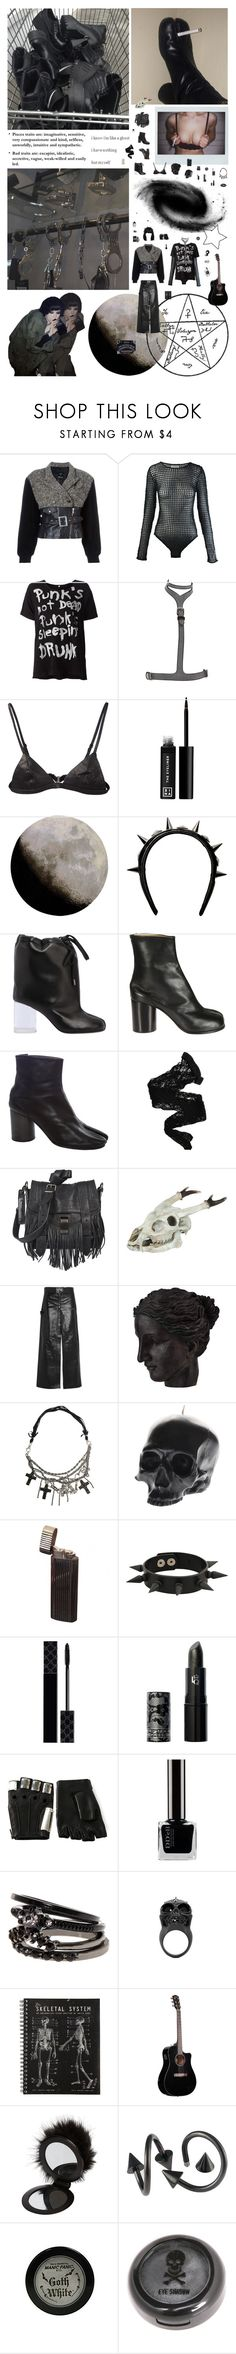 """""""No one can kill me with my white skin and black lips: when I get up every evening I realize that my heart is an empty room. When I can't find my third leg to wear another Maison Margiela Tabi boot I hate this world and my body."""" by nothingisnormal ❤ liked on Polyvore featuring Jean-Paul Gaultier, Maison Margiela, Giuseppe Zanotti, Fleur du Mal, Looking Glass, 3ina, nanimarquina, Givenchy, Wolford and Proenza Schouler"""